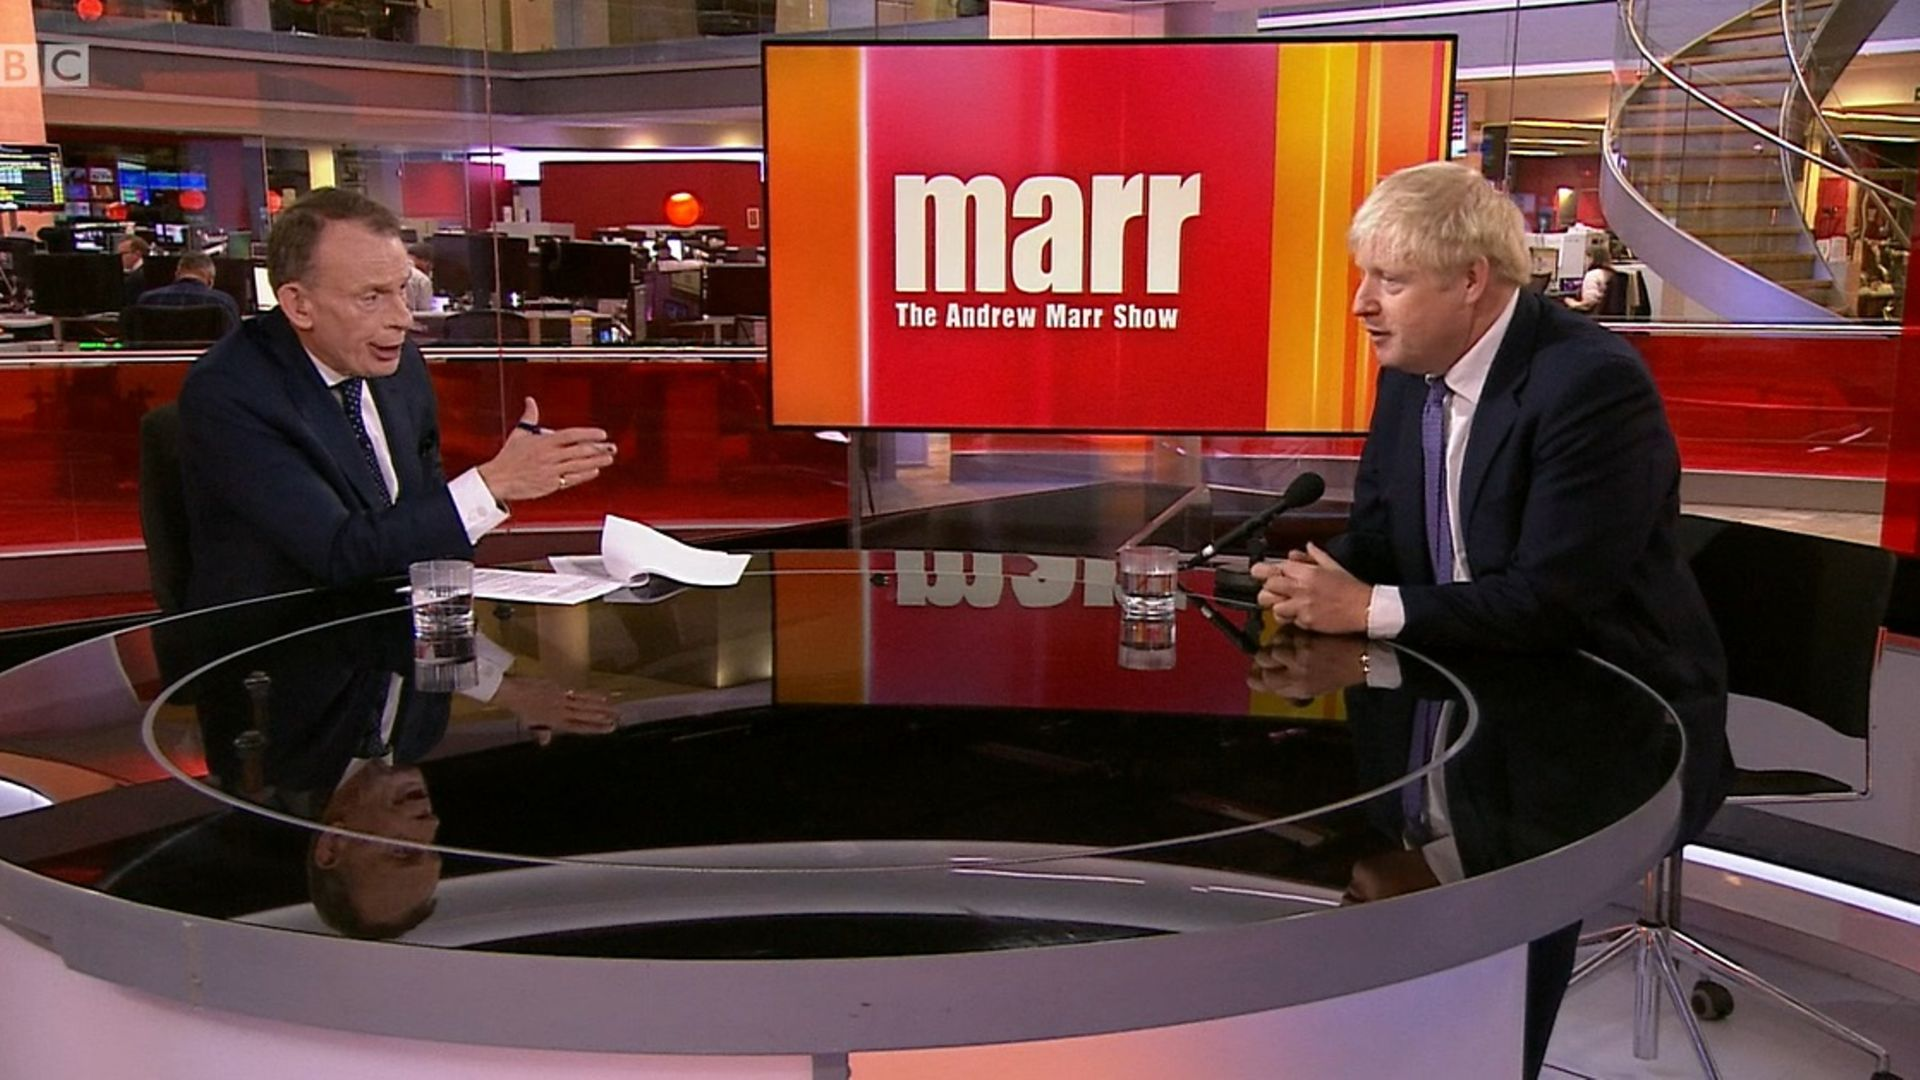 Boris Johnson is interviewed by Andrew Marr - Credit: BBC